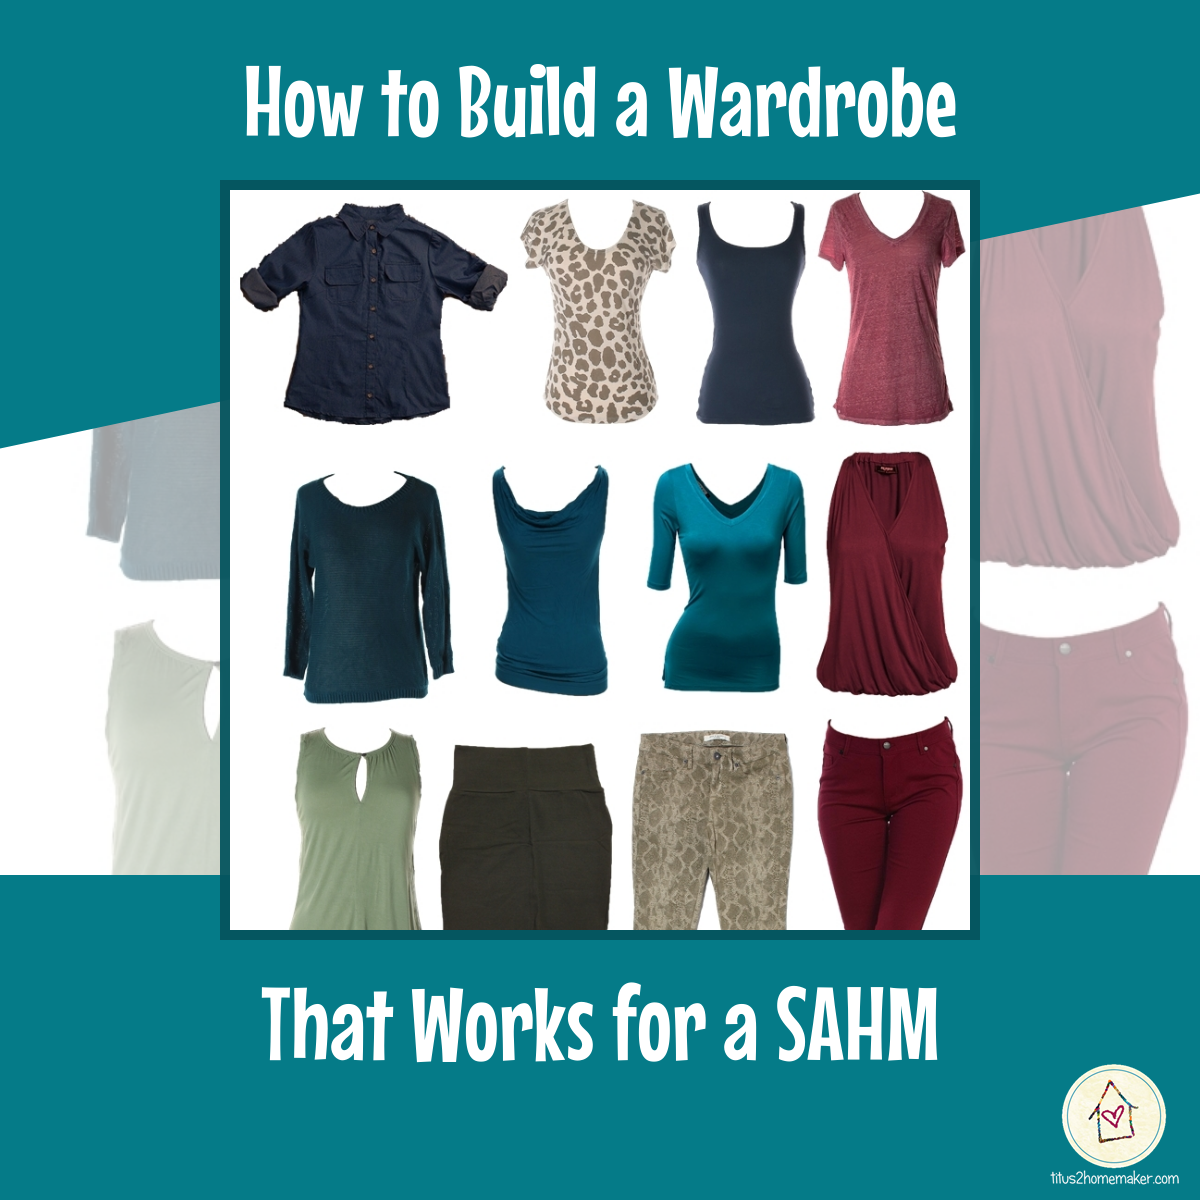 How To Build A Wardrobe >> How To Build A Wardrobe That Works For A Sahm Titus 2